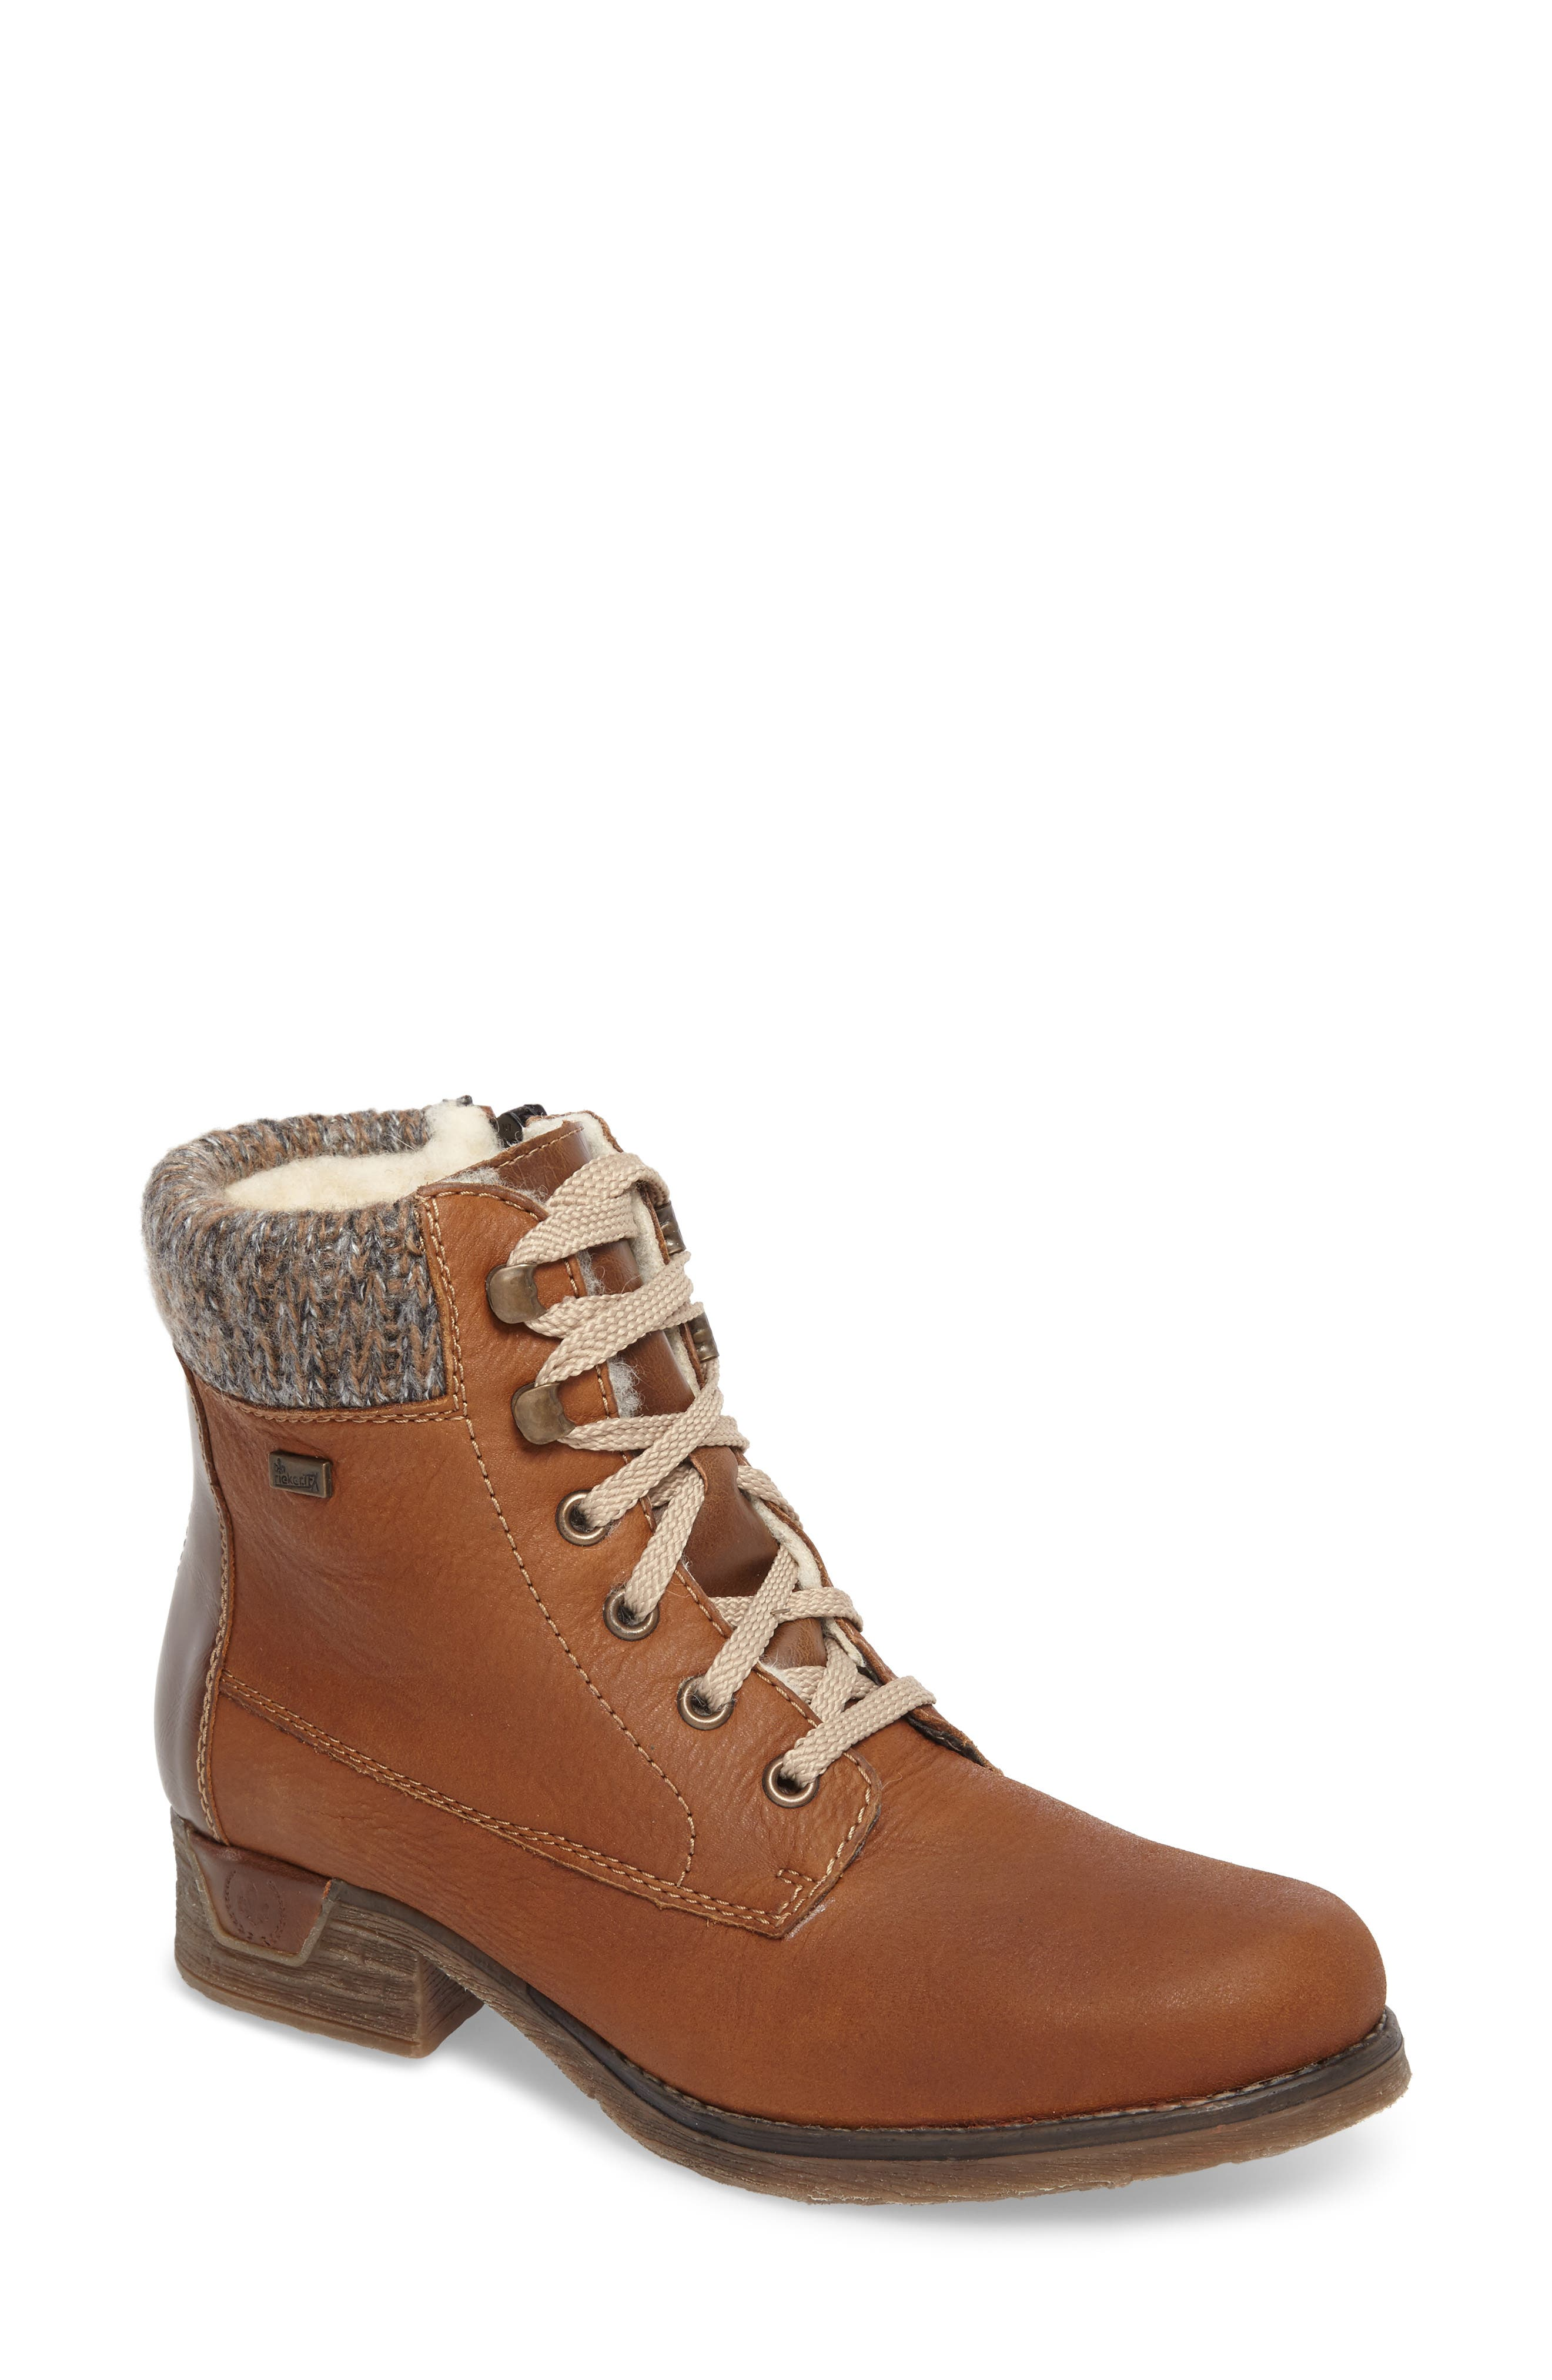 Rieker Antistress Fee 02 Lace-Up Boot, Brown